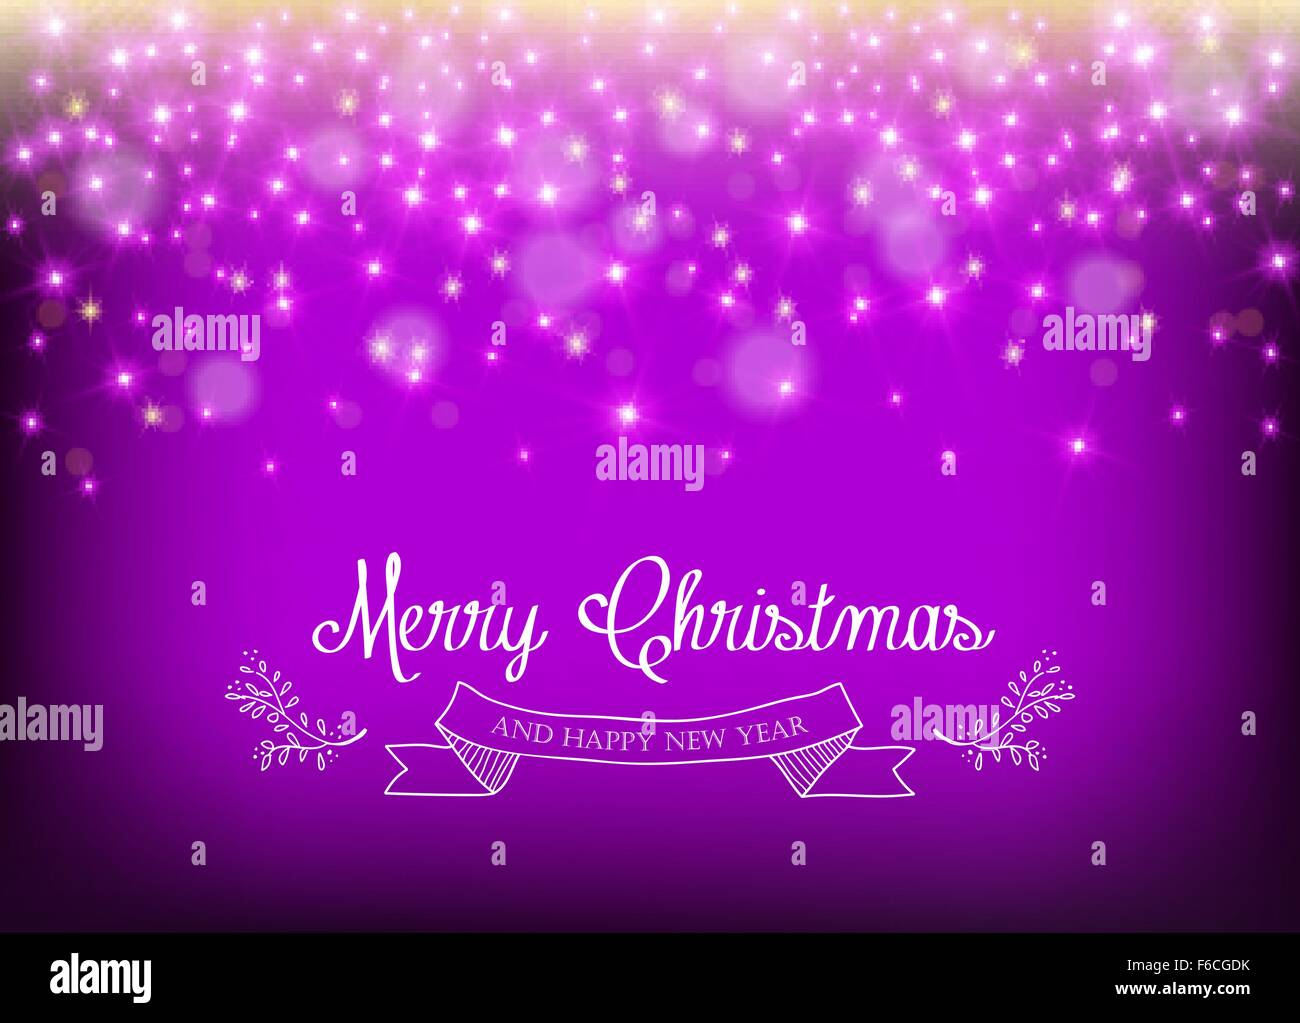 merry christmas happy new year leaf and banner ornament label stock vector image art alamy https www alamy com stock photo merry christmas happy new year leaf and banner ornament label decoration 90016127 html